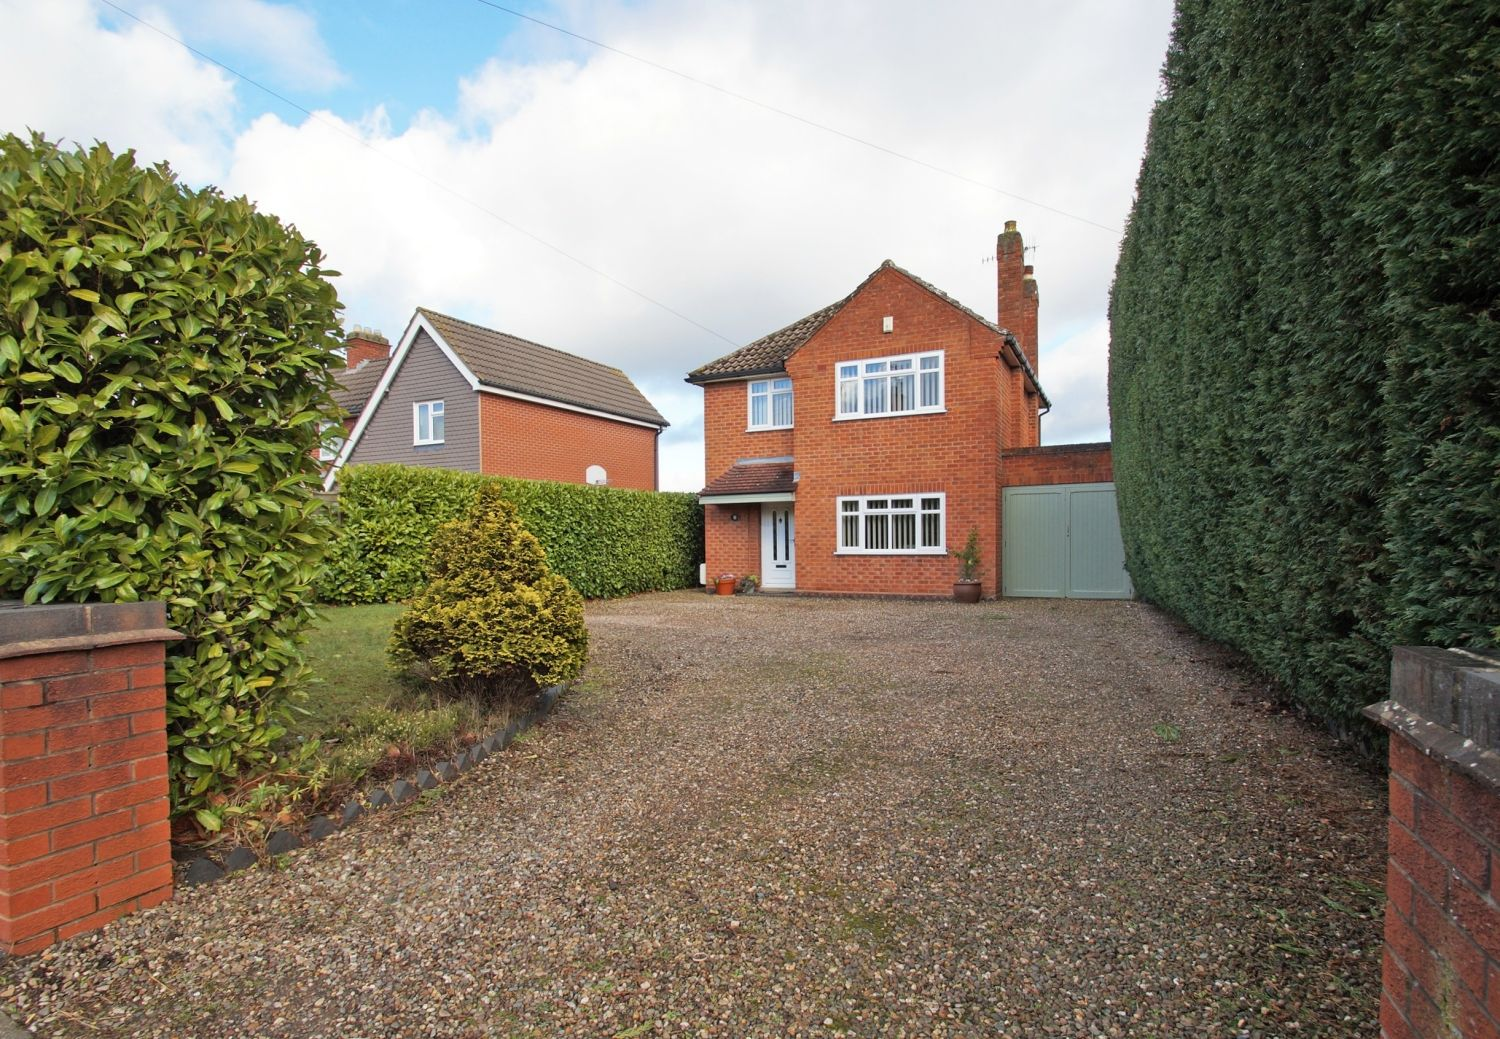 3 bed detached for sale in Fox Lane, Bromsgrove - Property Image 1